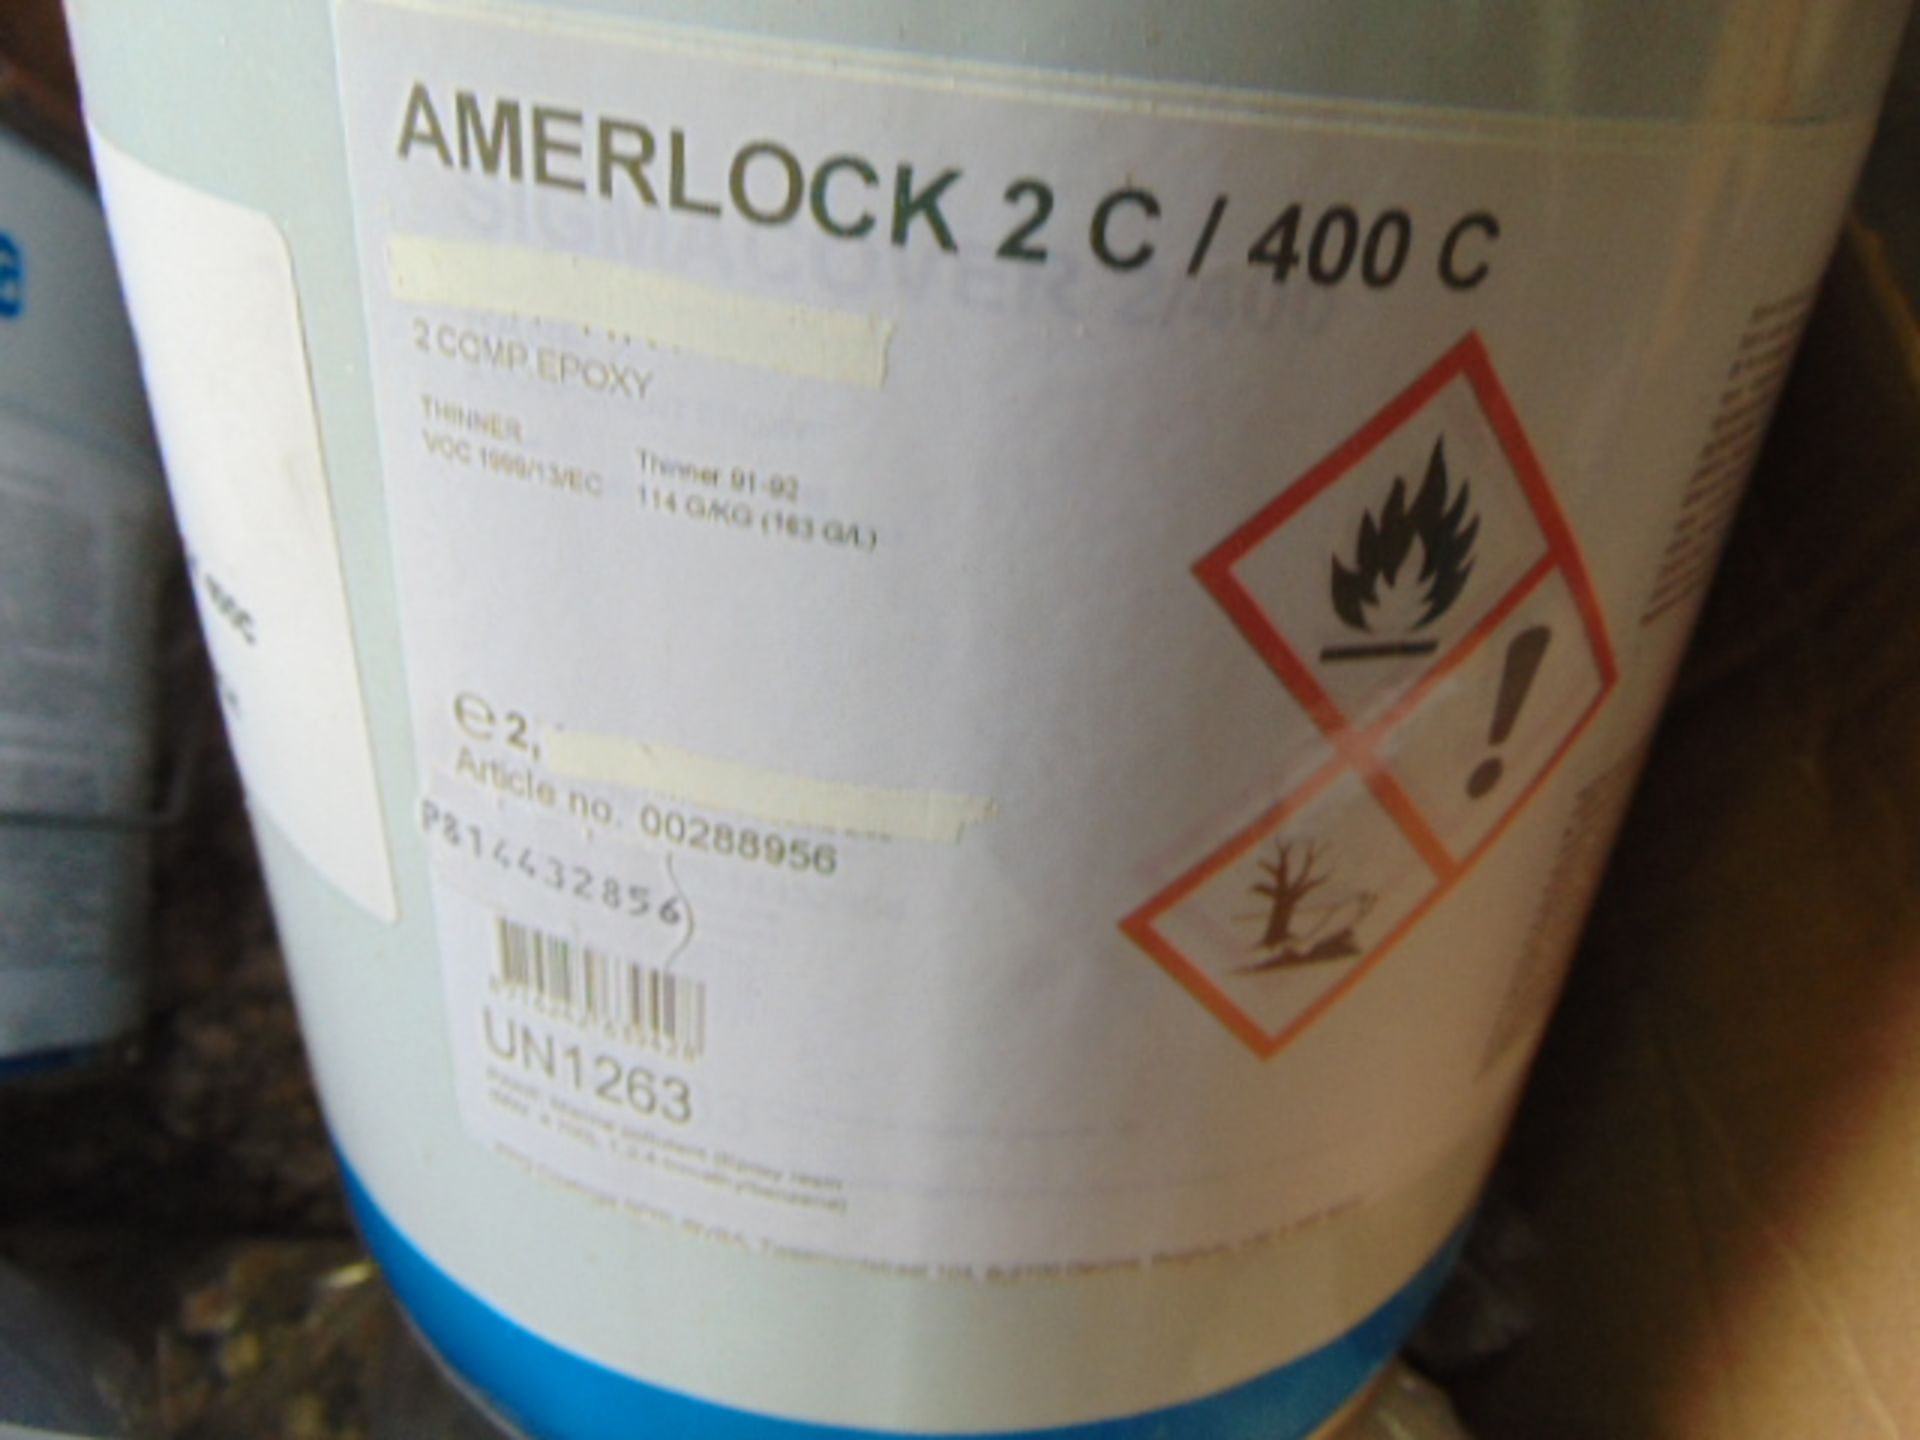 Lot 127 - Qty 2 x Amerlock 2C/ 400C Direct from Reserve Stores